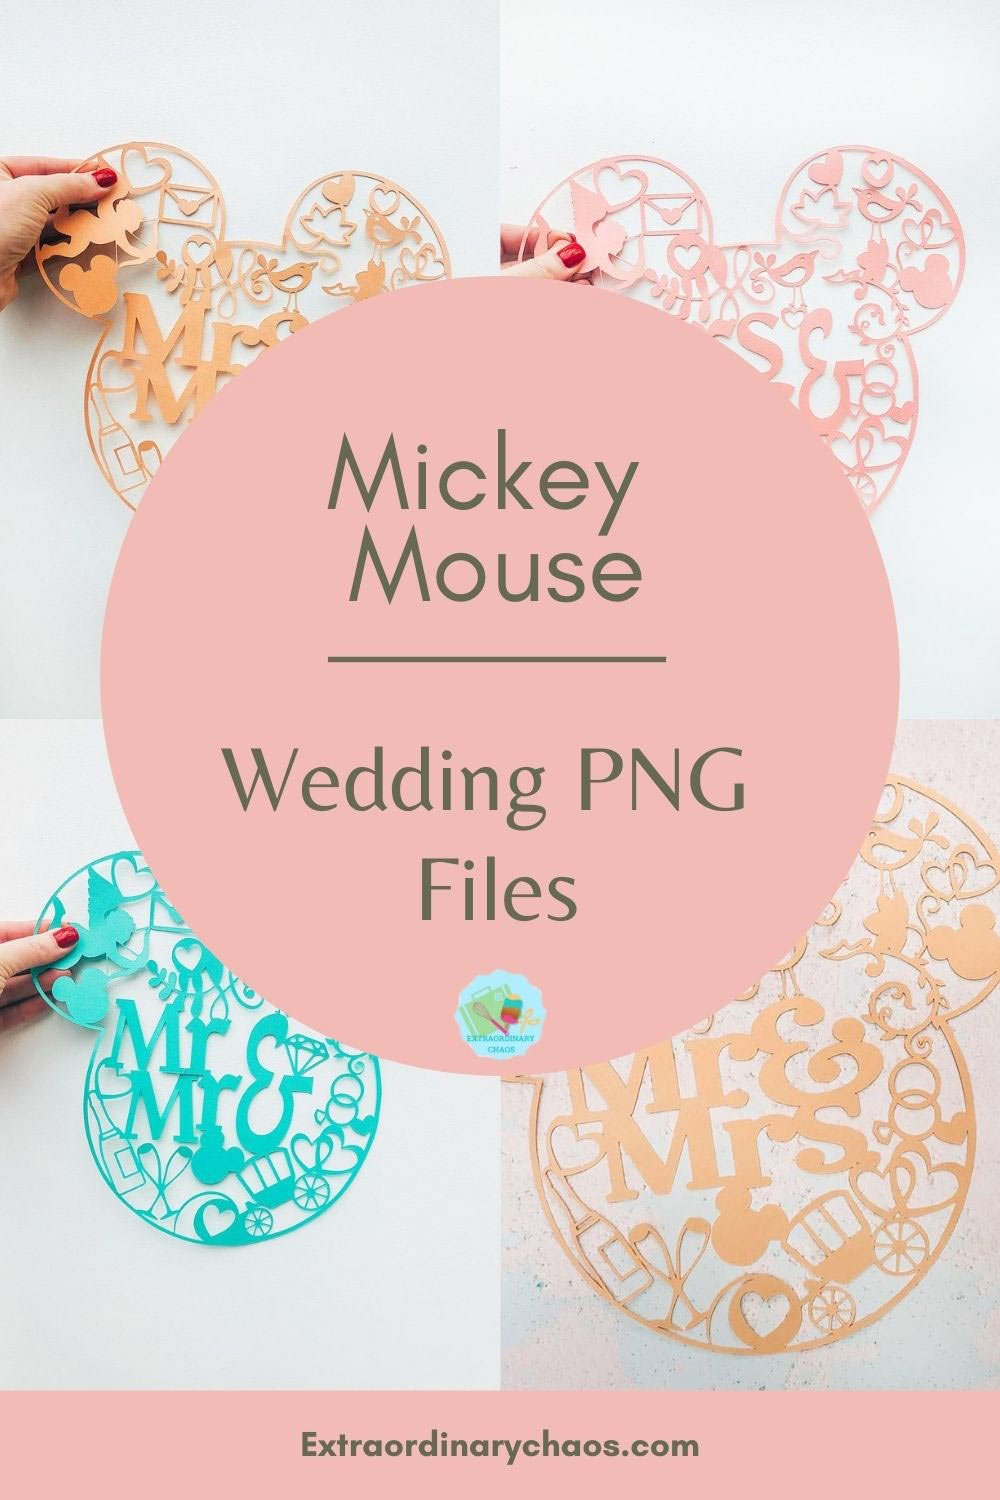 Mickey Mouse Wedding PNG Files for creating wedding decorations, table bunting and cards